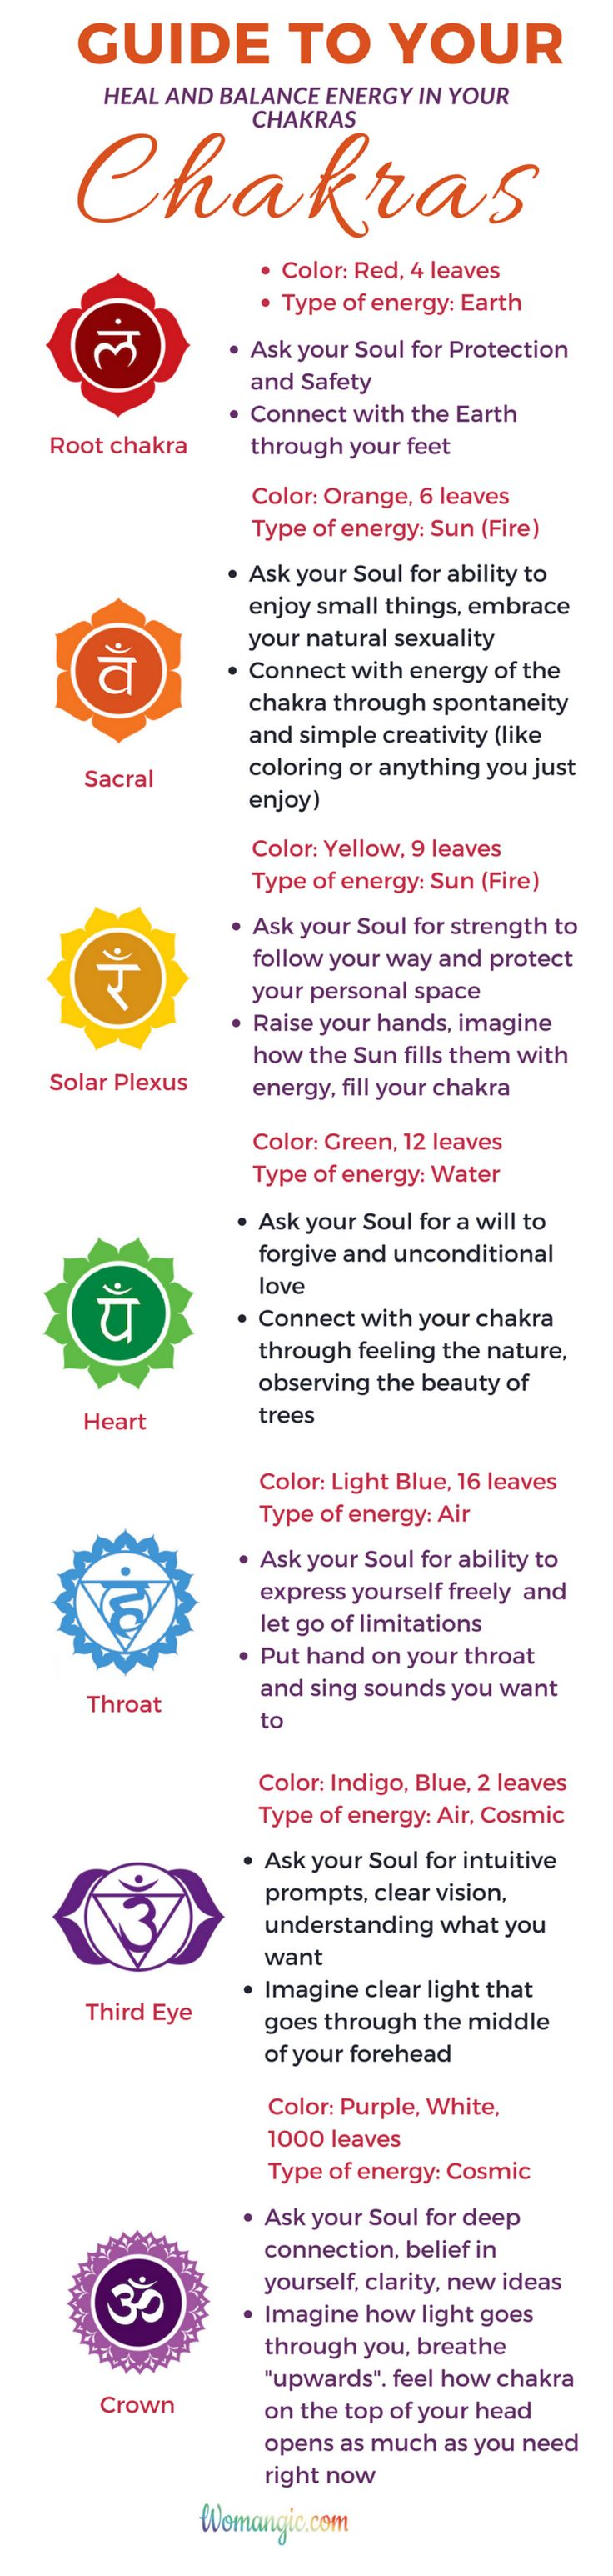 Chakra, Chakra Balancing, Root, Sacral, Solar Plexus, Heart, Throat, Third Eye, Crown, Chakra meaning, Chakra affirmation, Chakra Mantra, Chakra Energy, Energy, Chakra articles, Chakra Healing, Chakra Cleanse, Chakra Illustration, Chakra Base, Chakra Images, Chakra Signification, healing, meditation, Confidence | Confidence Women | Confidence Tips | Confidence In Yourself | How To Gain Confidence | Confidence Inspiration| Affirmation | Mantra |